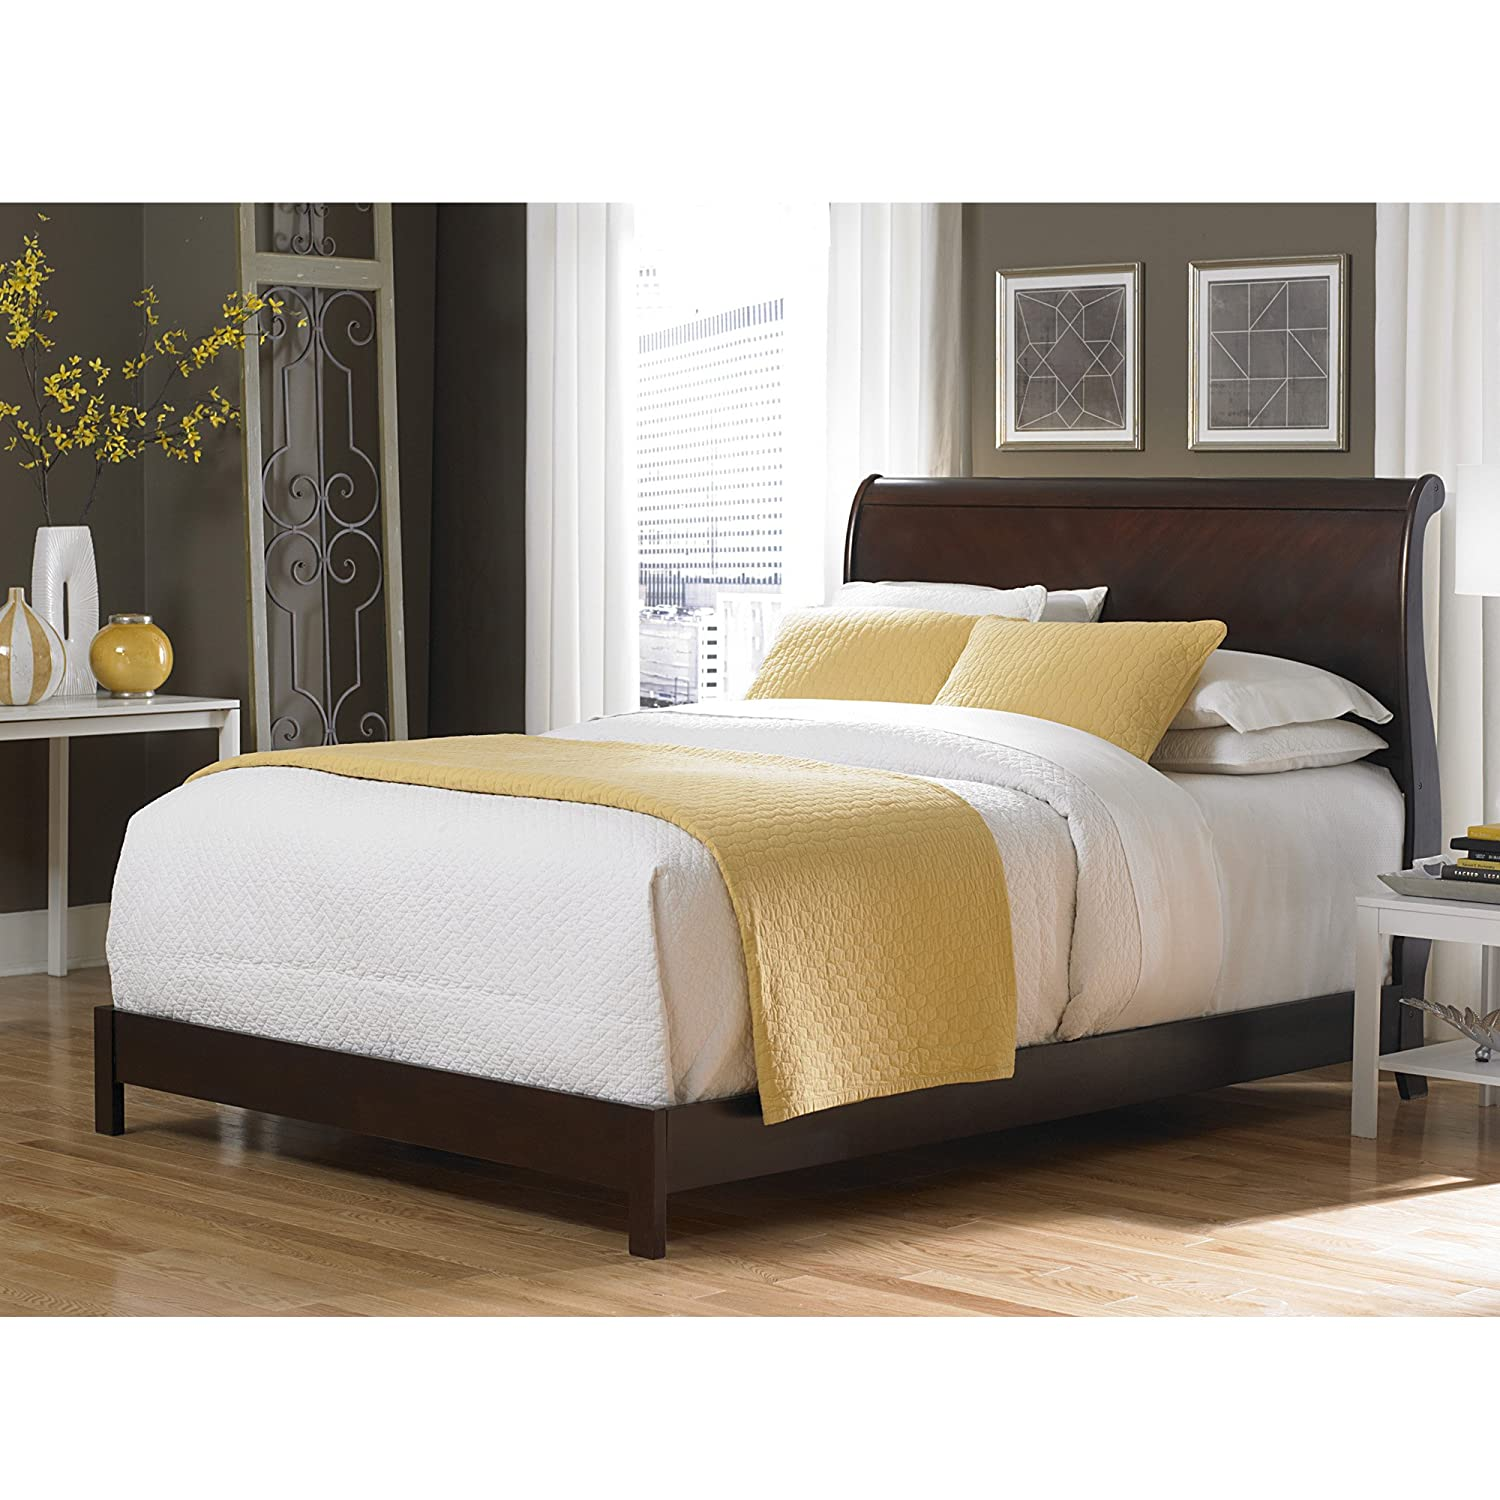 Amazoncom Bridgeport Complete Bed with Curved Sleigh